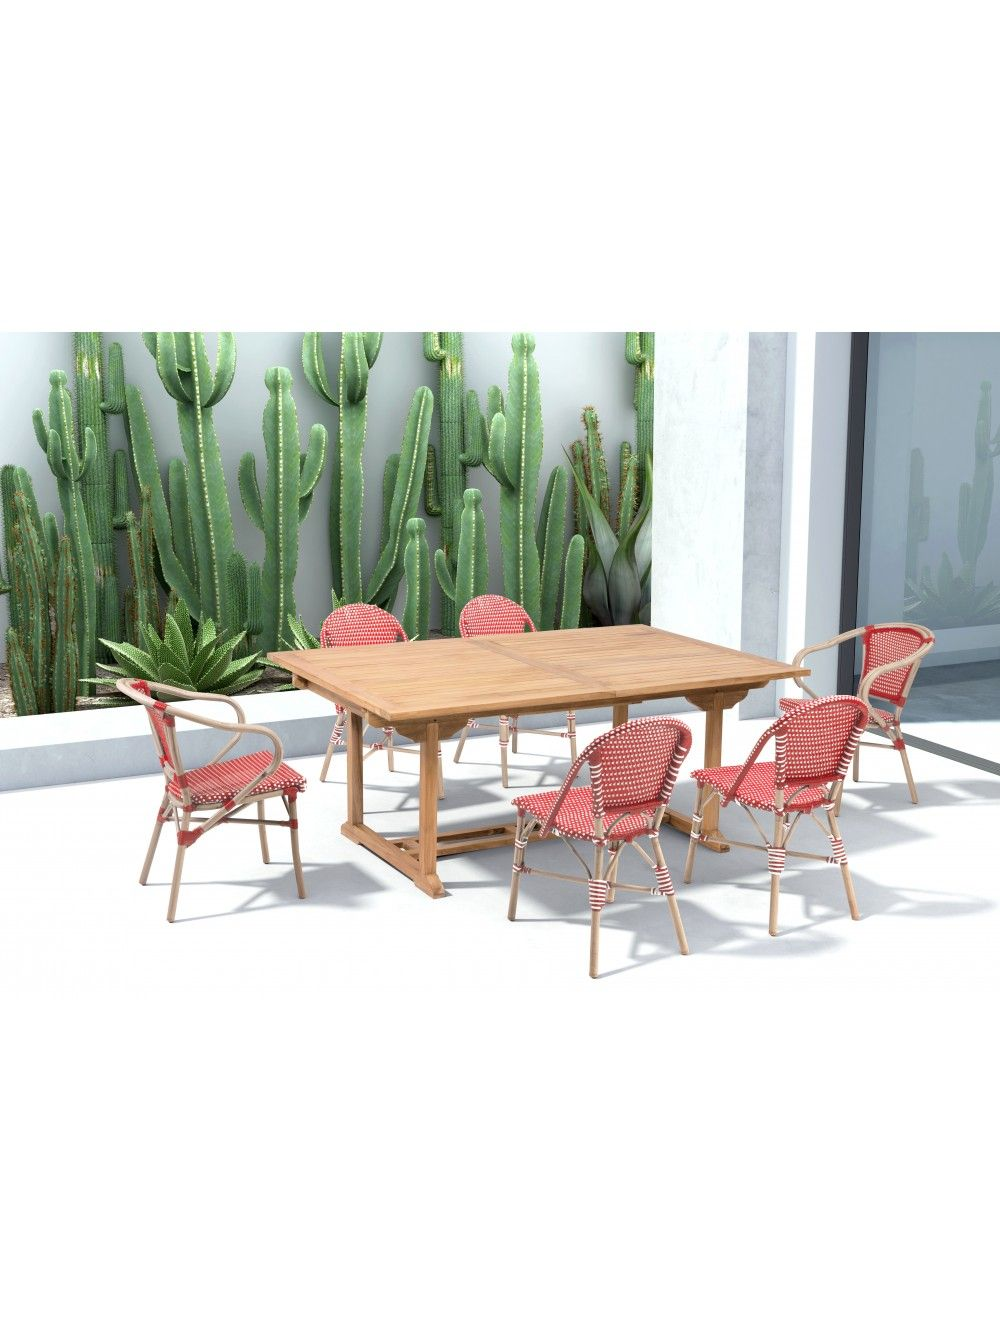 Indoor Outdoor Furniture White Dining Chairs Woven Dining Chairs Dining Arm Chair